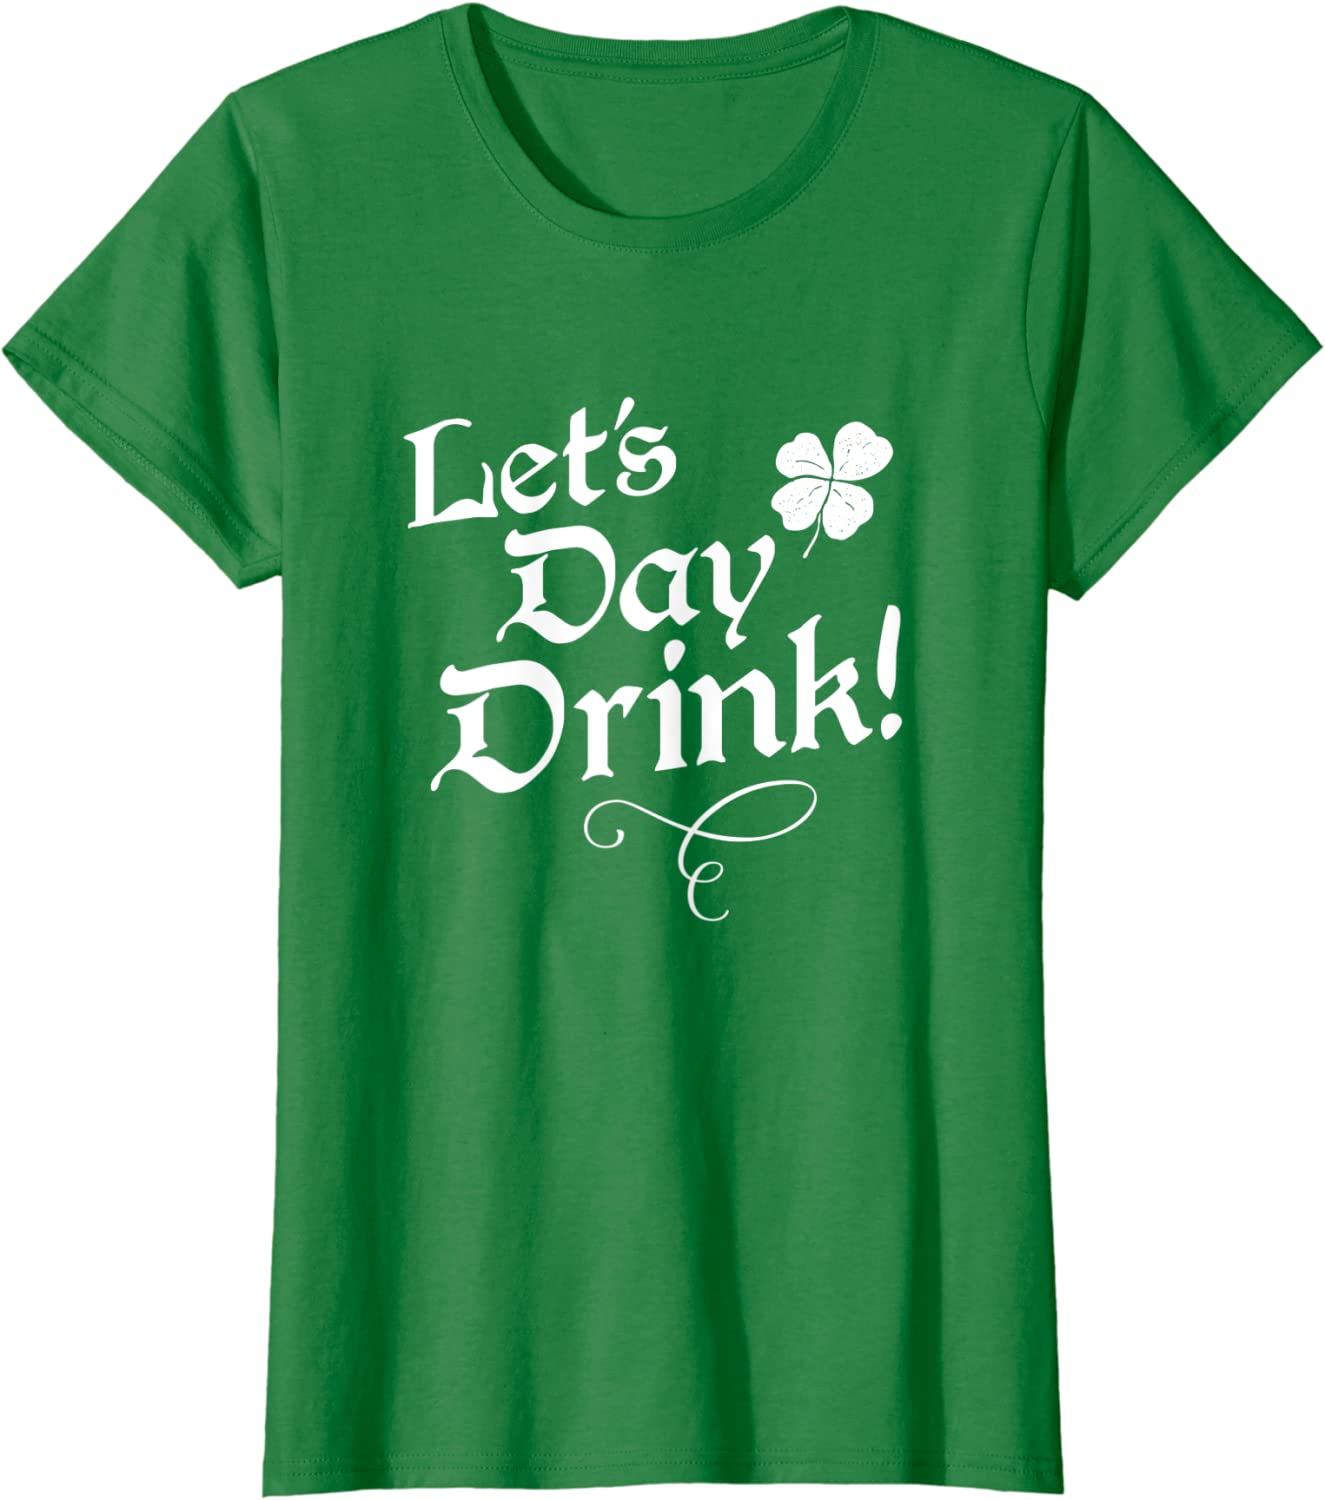 Ladies Gift Patrick/'s Day Woman/'s Tee Shirt T-Shirt for Girl St Saint Paddy/'s Day Shirt Drinking Beer Tee Funny T Lucky I/'m Irish Top